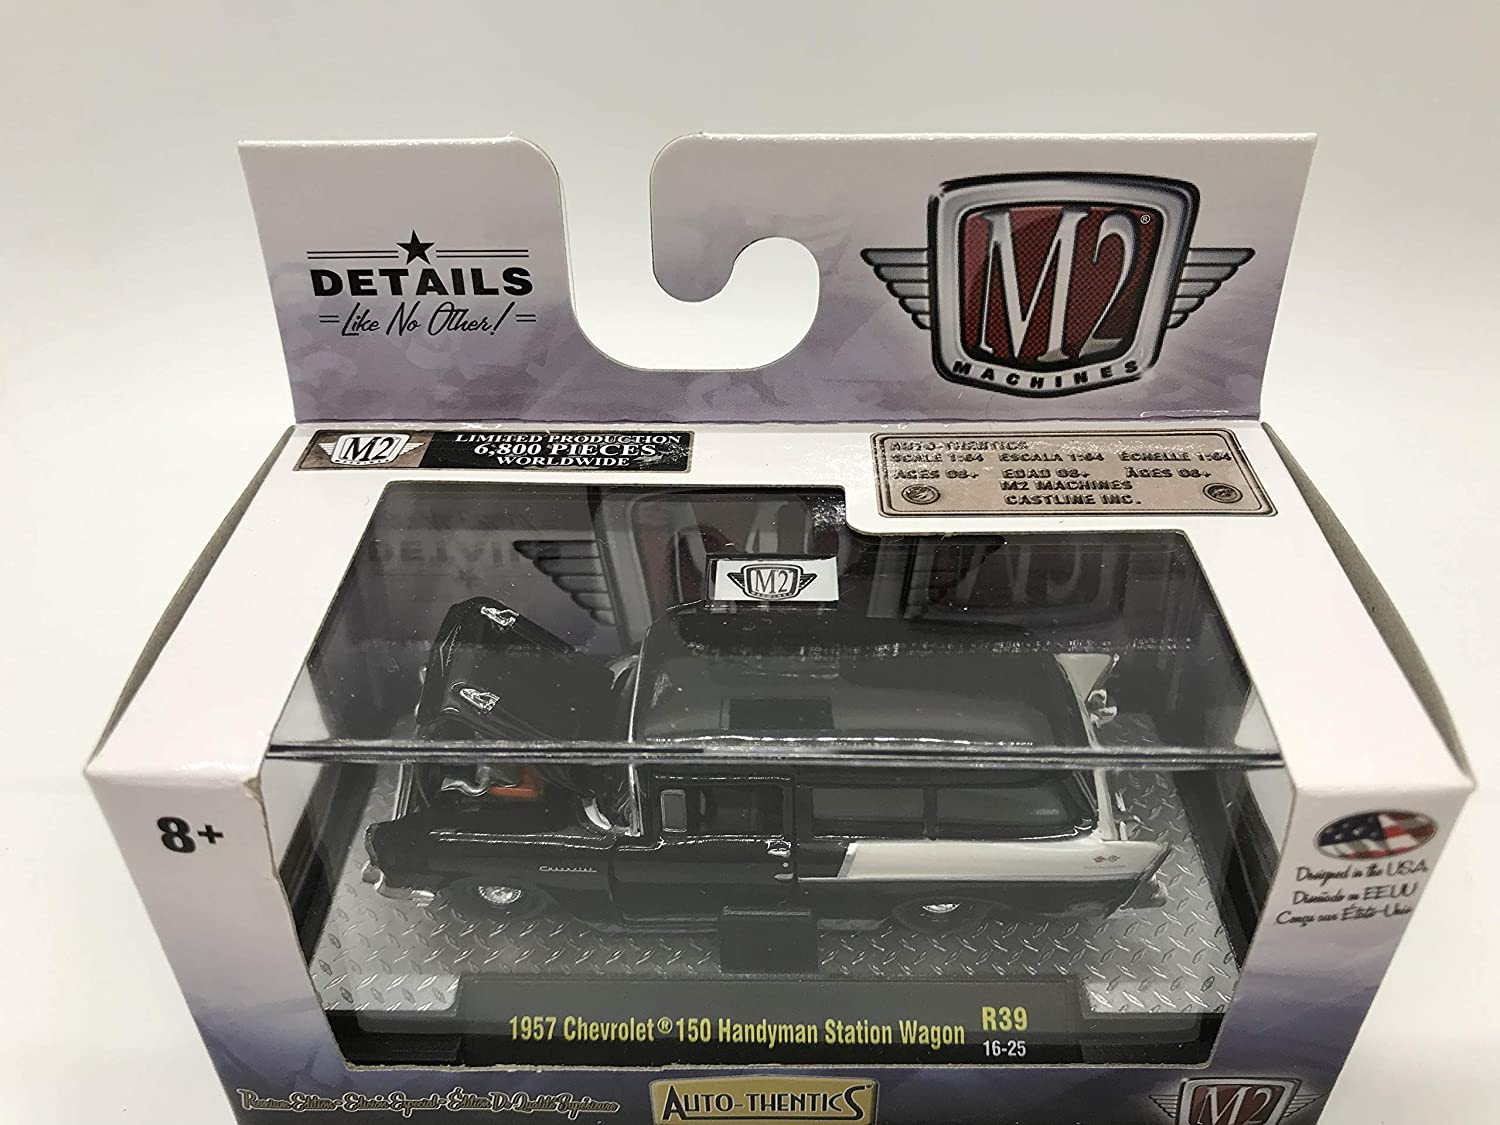 M2 Machines Auto-Thentics 1951 Ford Crestliner R39 16-27 Grey Details Like NO Other Over 42 Parts 1 of 6800